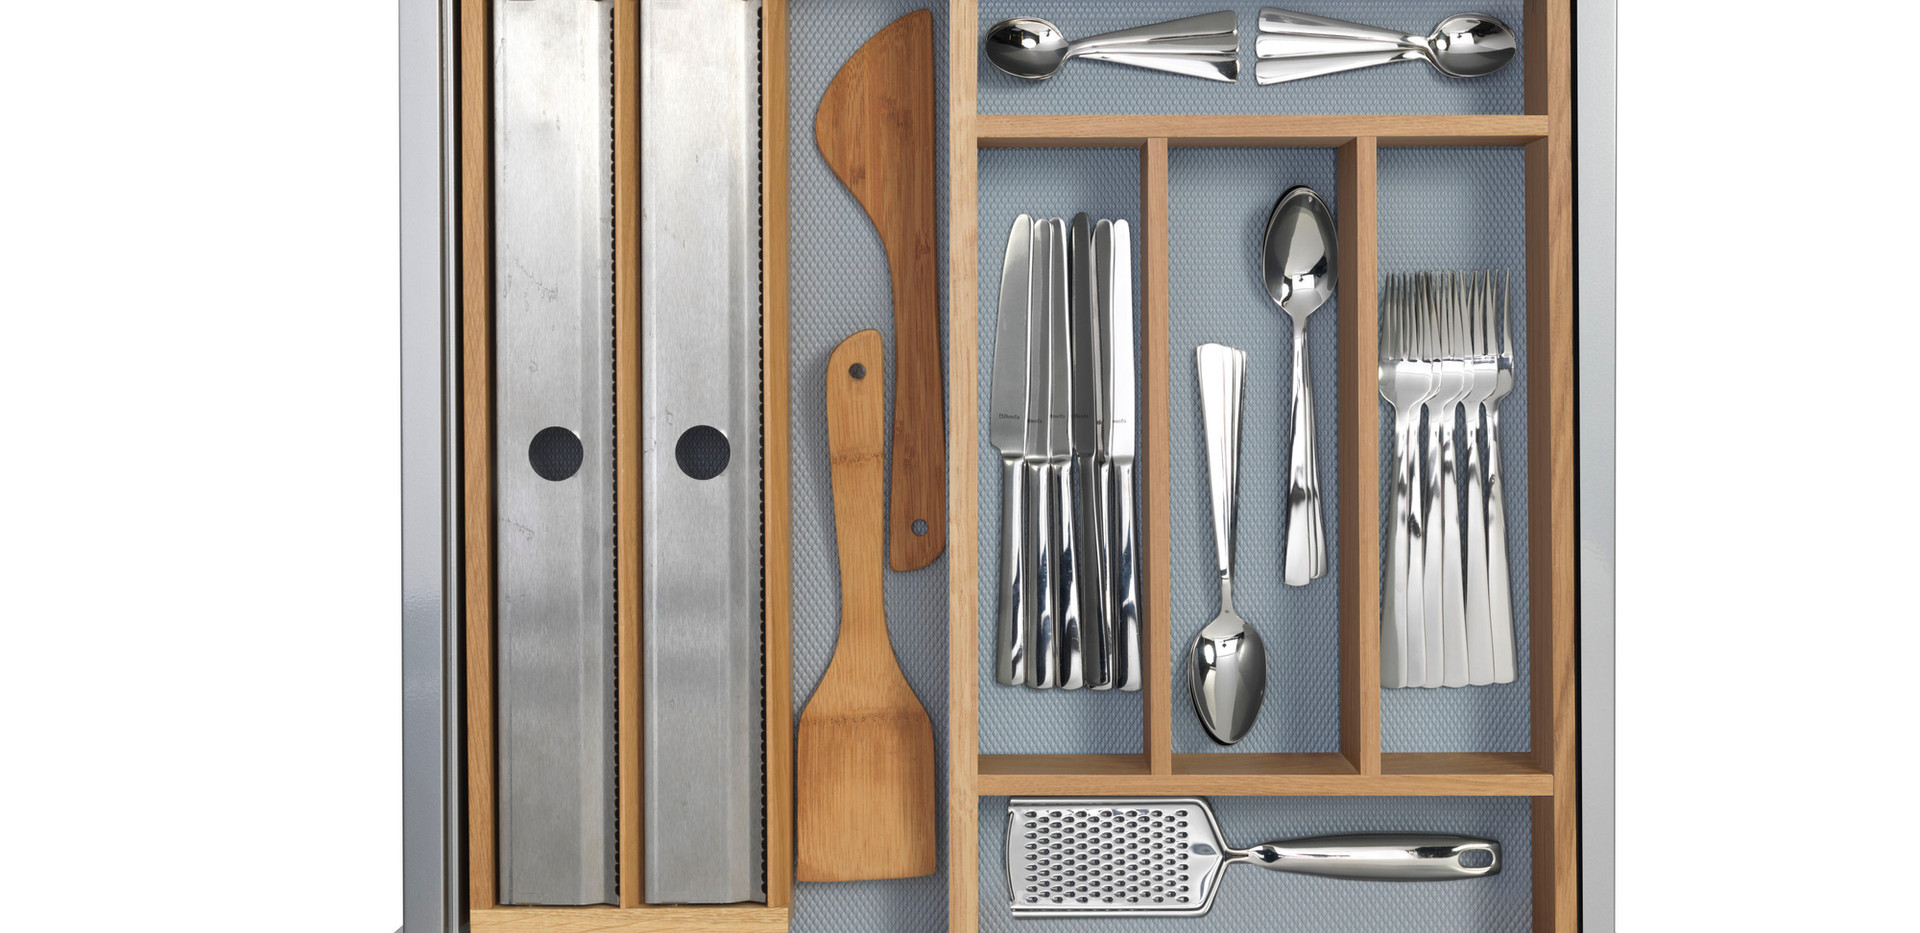 Roll Dispenser and Cutlery Tray